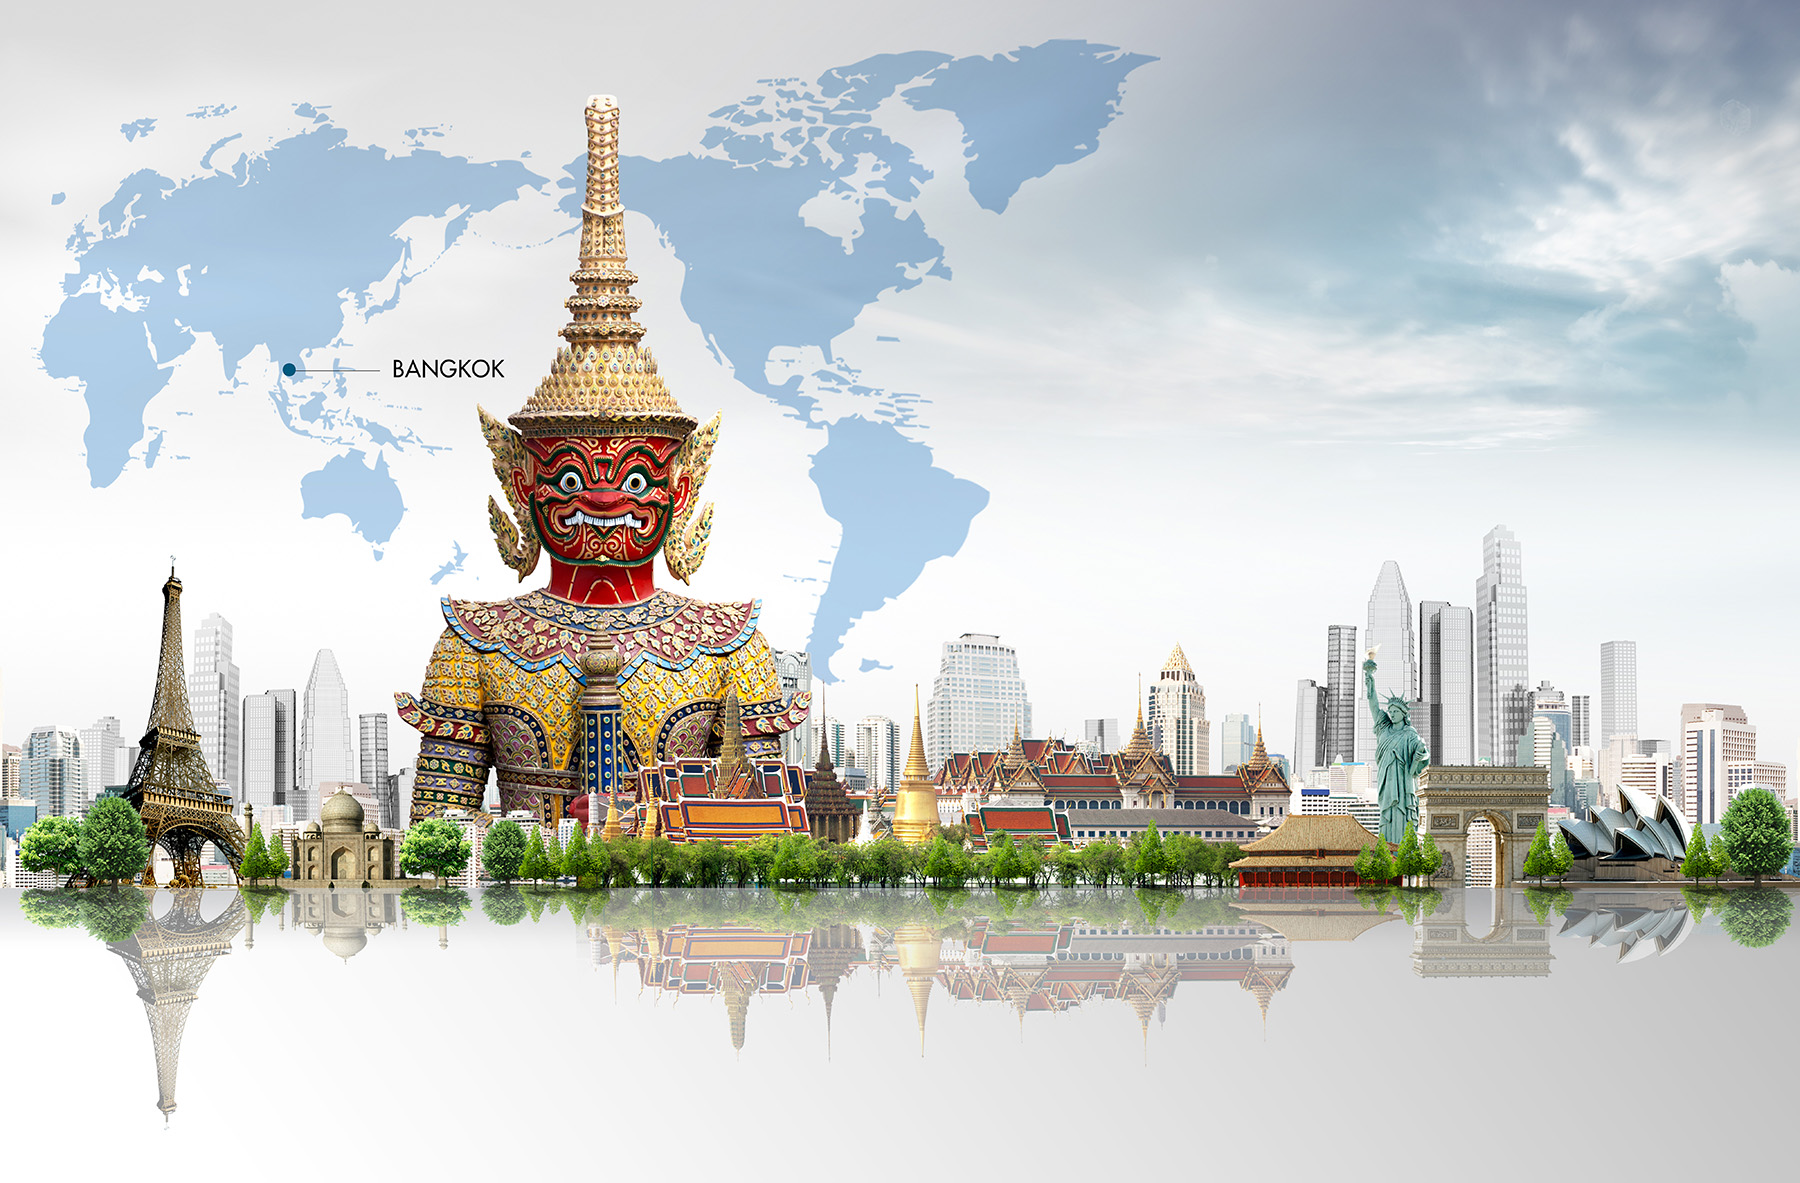 Bangkok Buddhist statues and other landmark buildings 50008